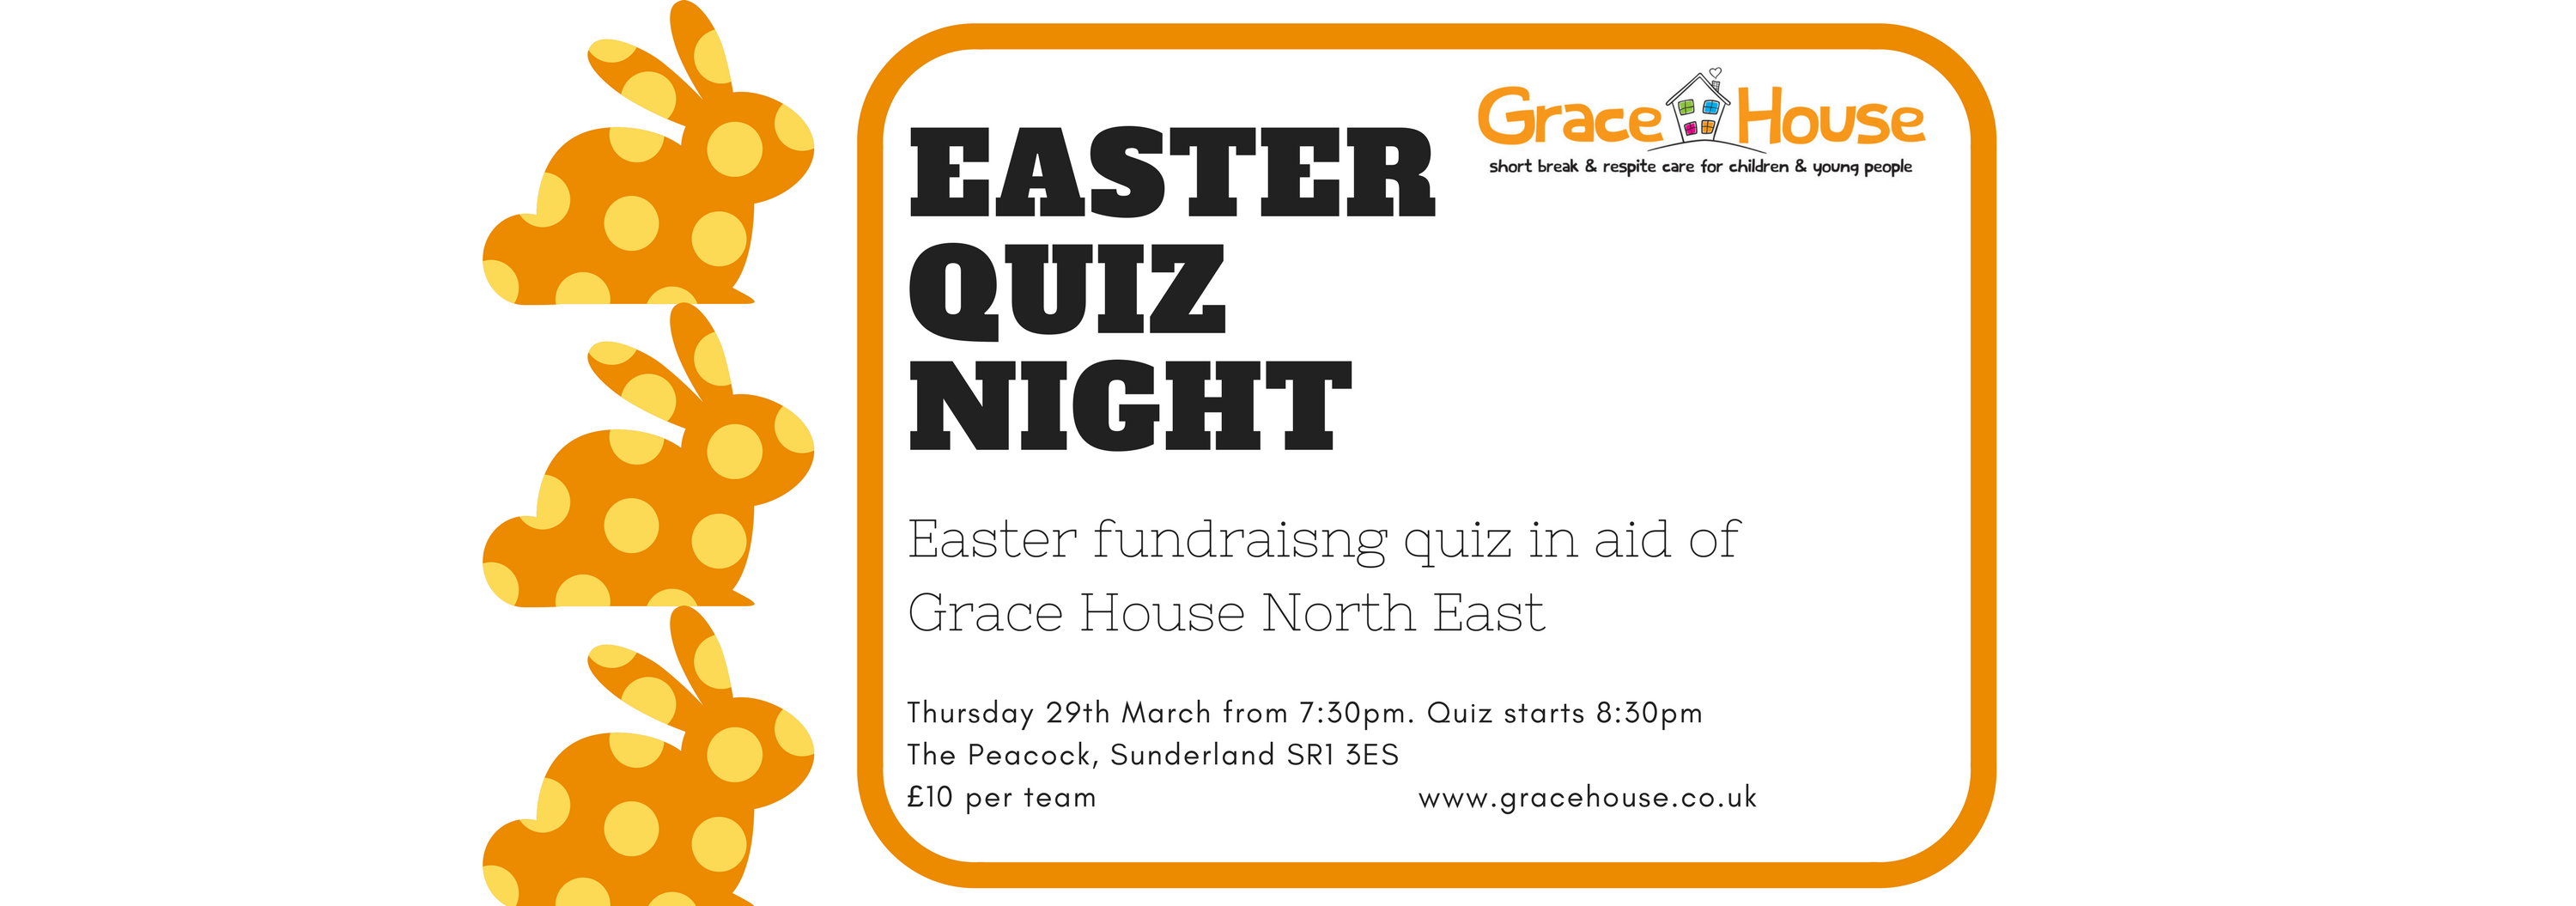 Grace House Easter Quiz